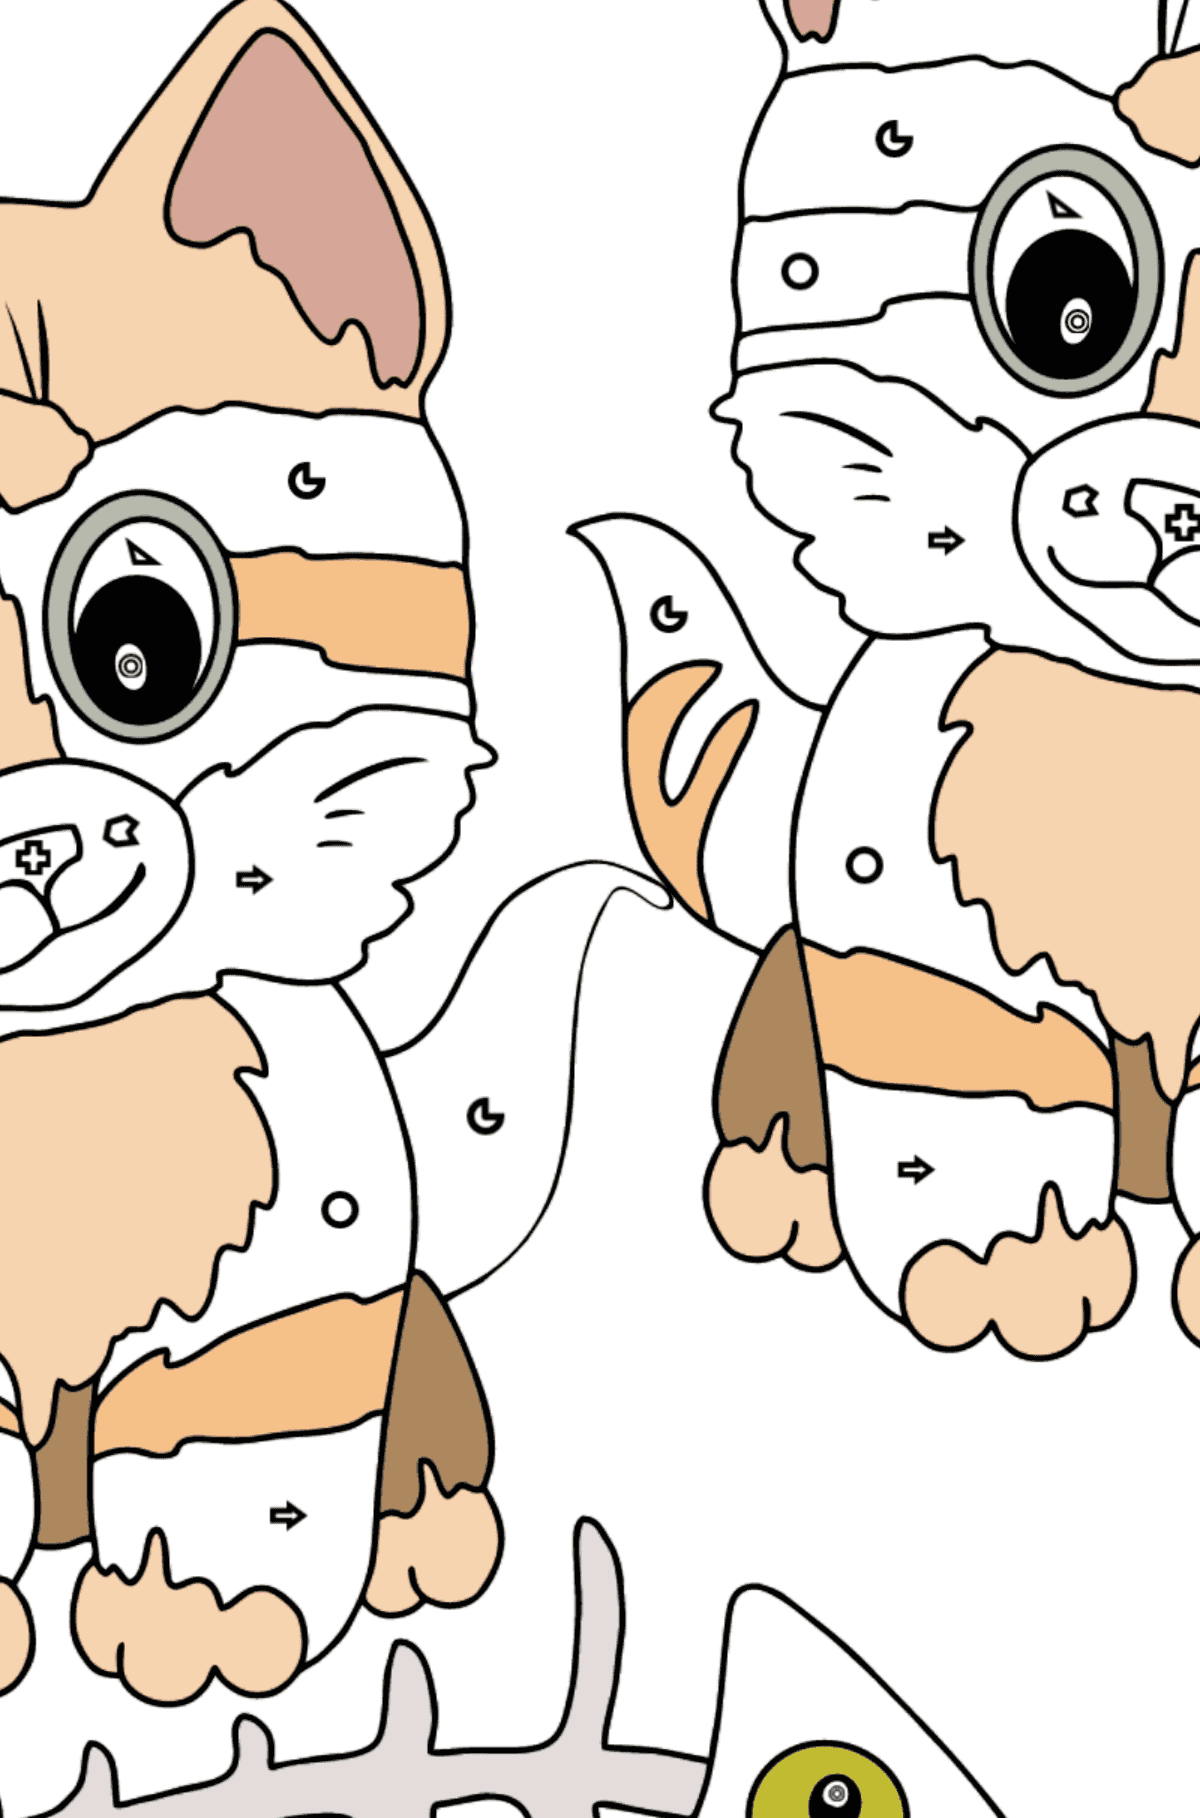 Coloring Page - Kittens are Looking at a Fish Bone - Coloring by Geometric Shapes for Kids